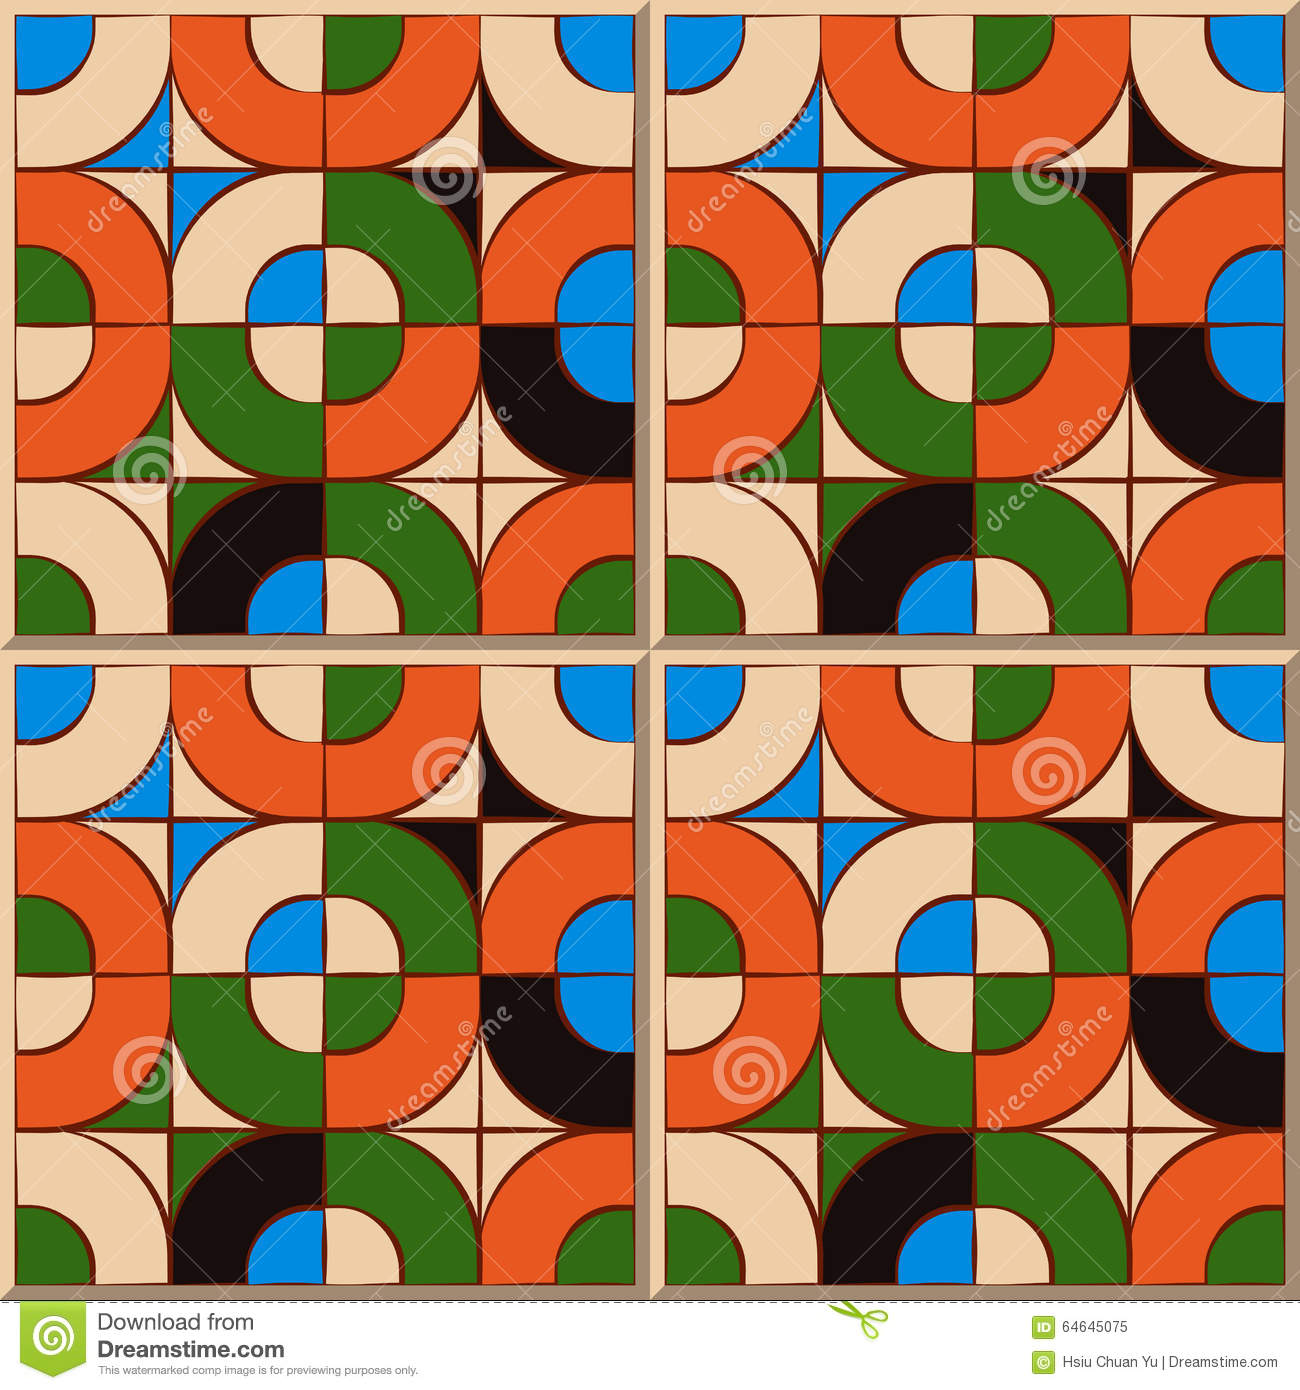 Round Mosaic Tile Patterns: Vintage Seamless Wall Tiles Of Round Square Mosaic